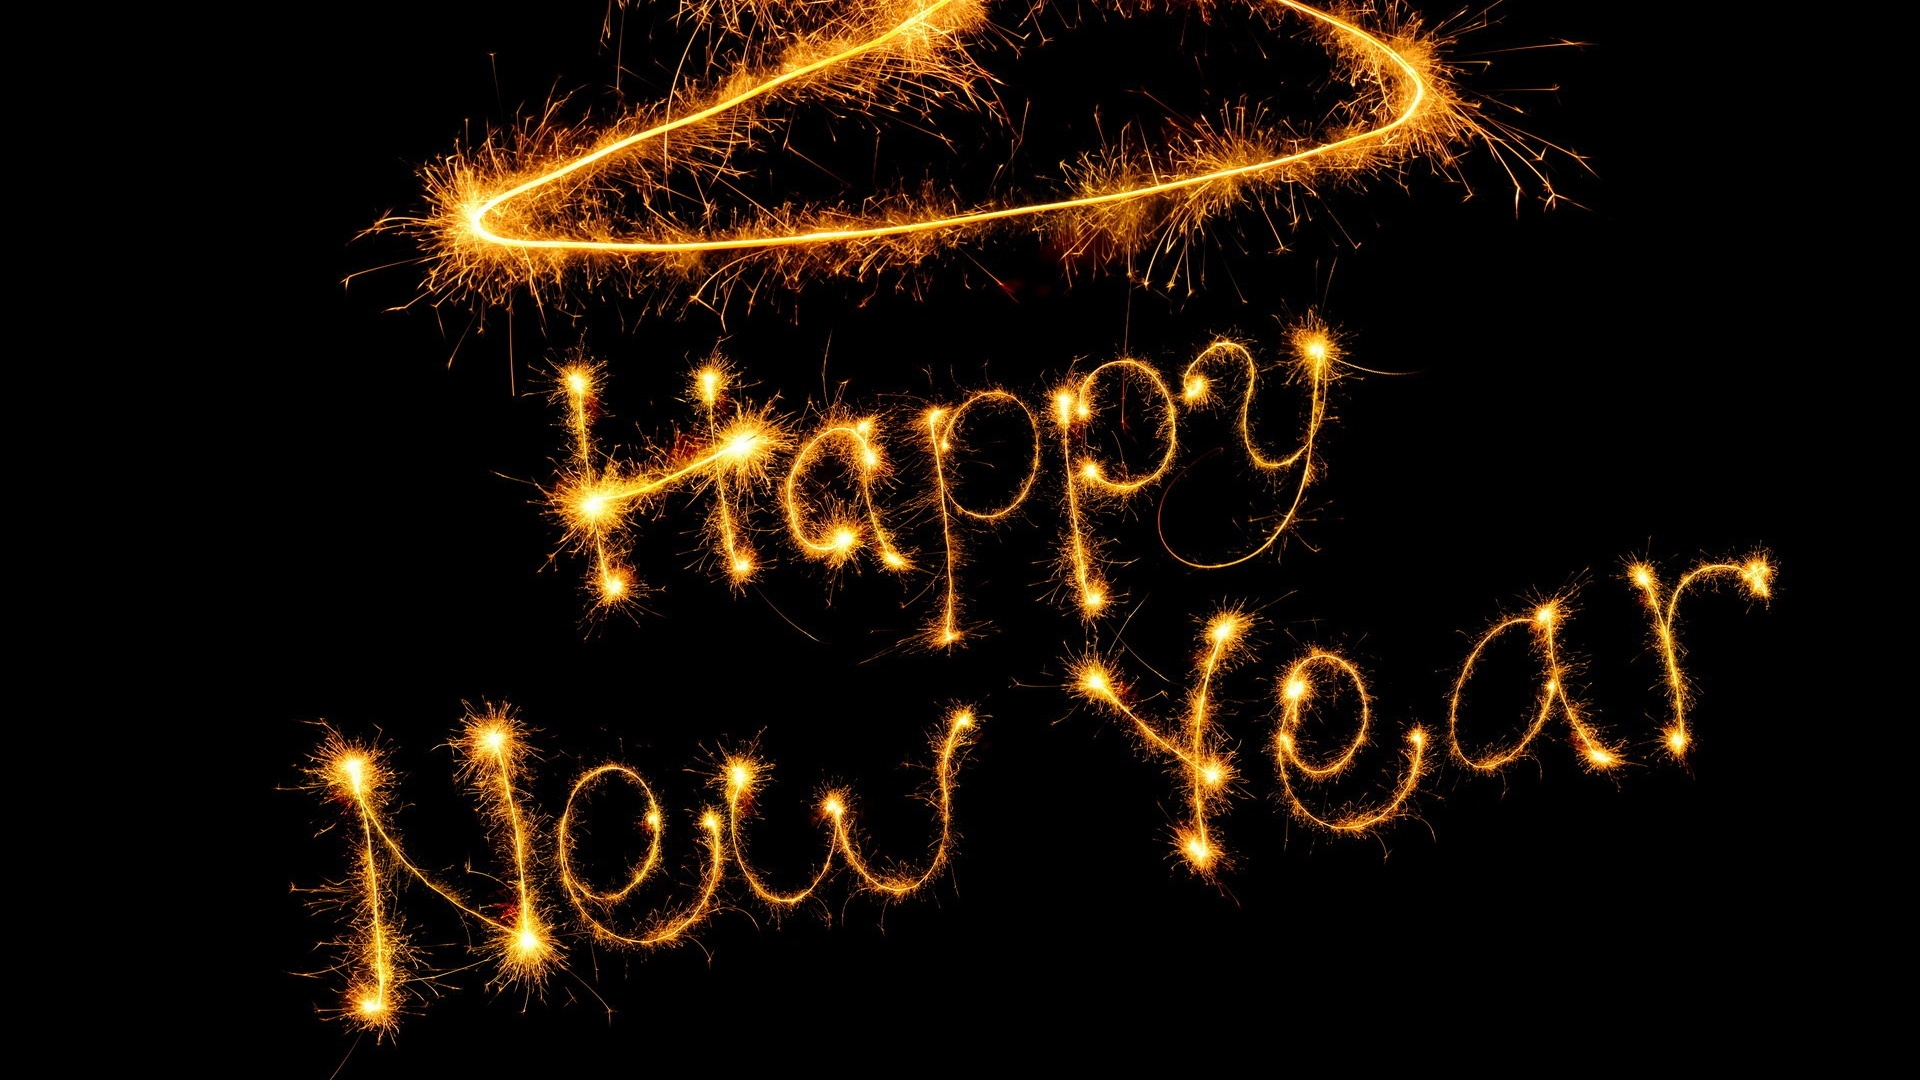 new year image free download